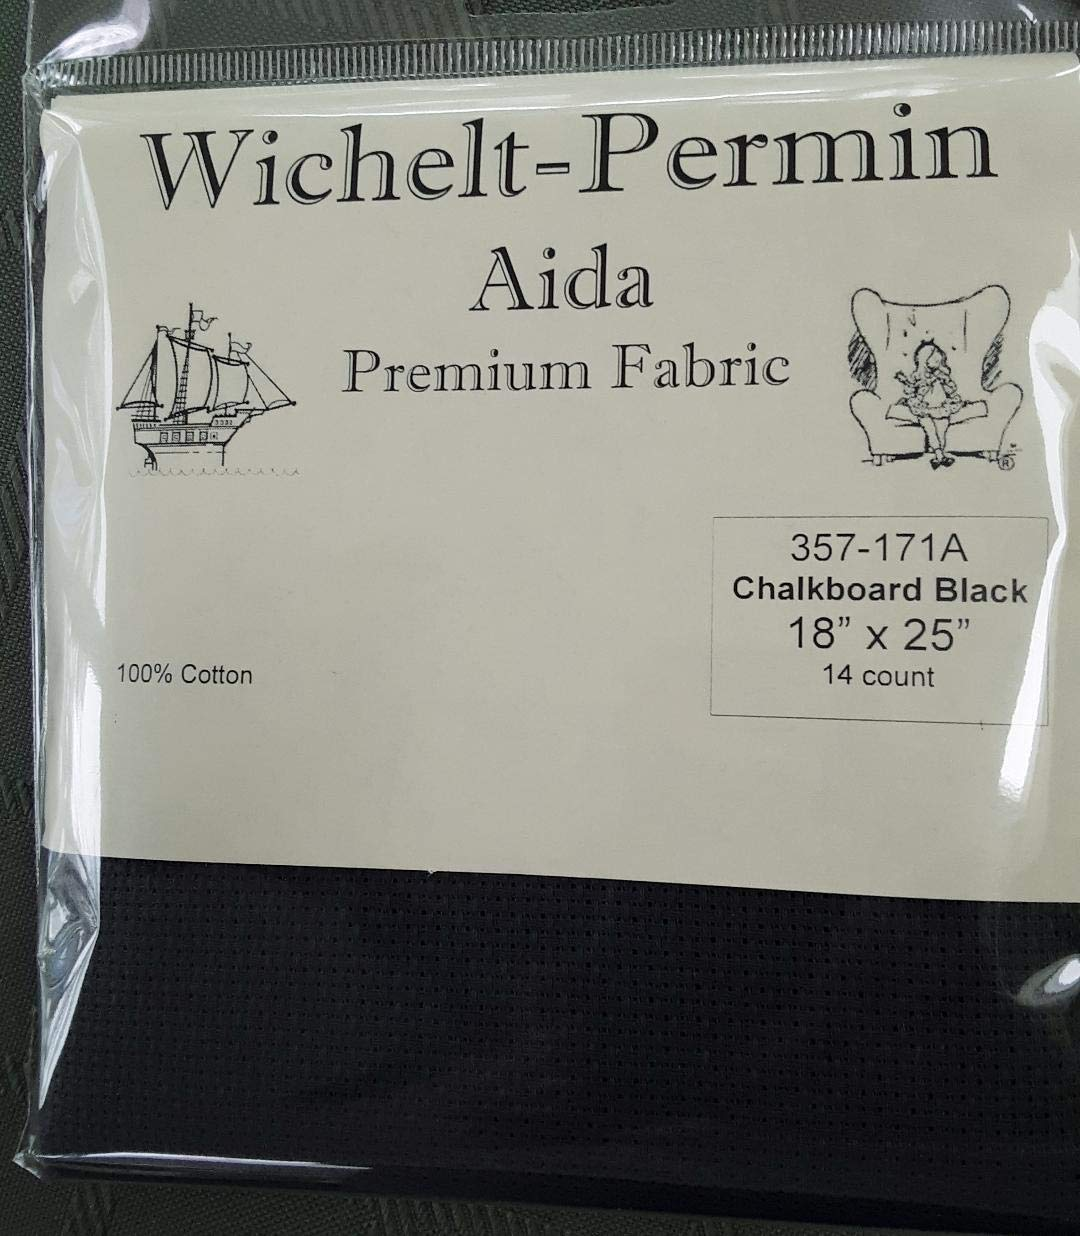 Wichelt Permin Premium AIDA Cross Stitch Fabric 14 Count Chalkboard Black 18 x 25